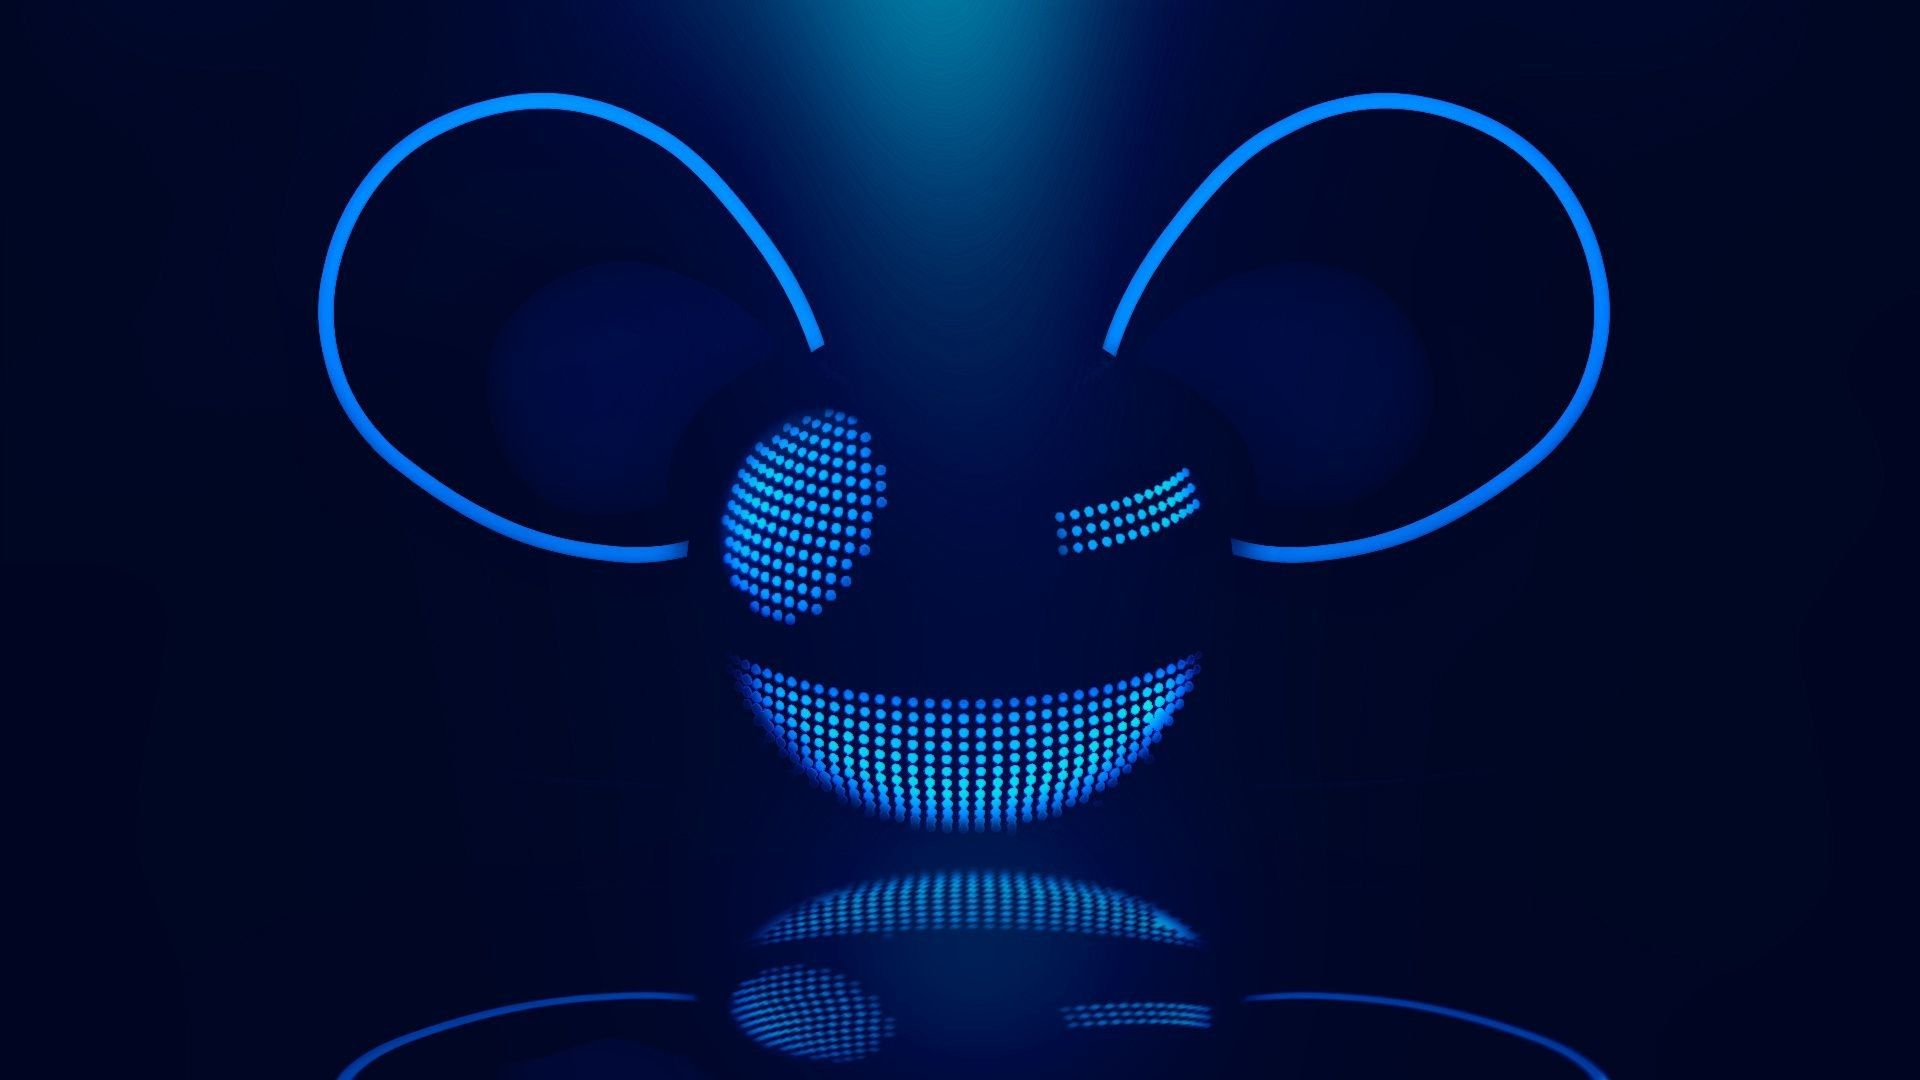 1920x1080 Deadmaus dead mouse winks at deadmaus Deadmau5. Desktop wallpapers ...